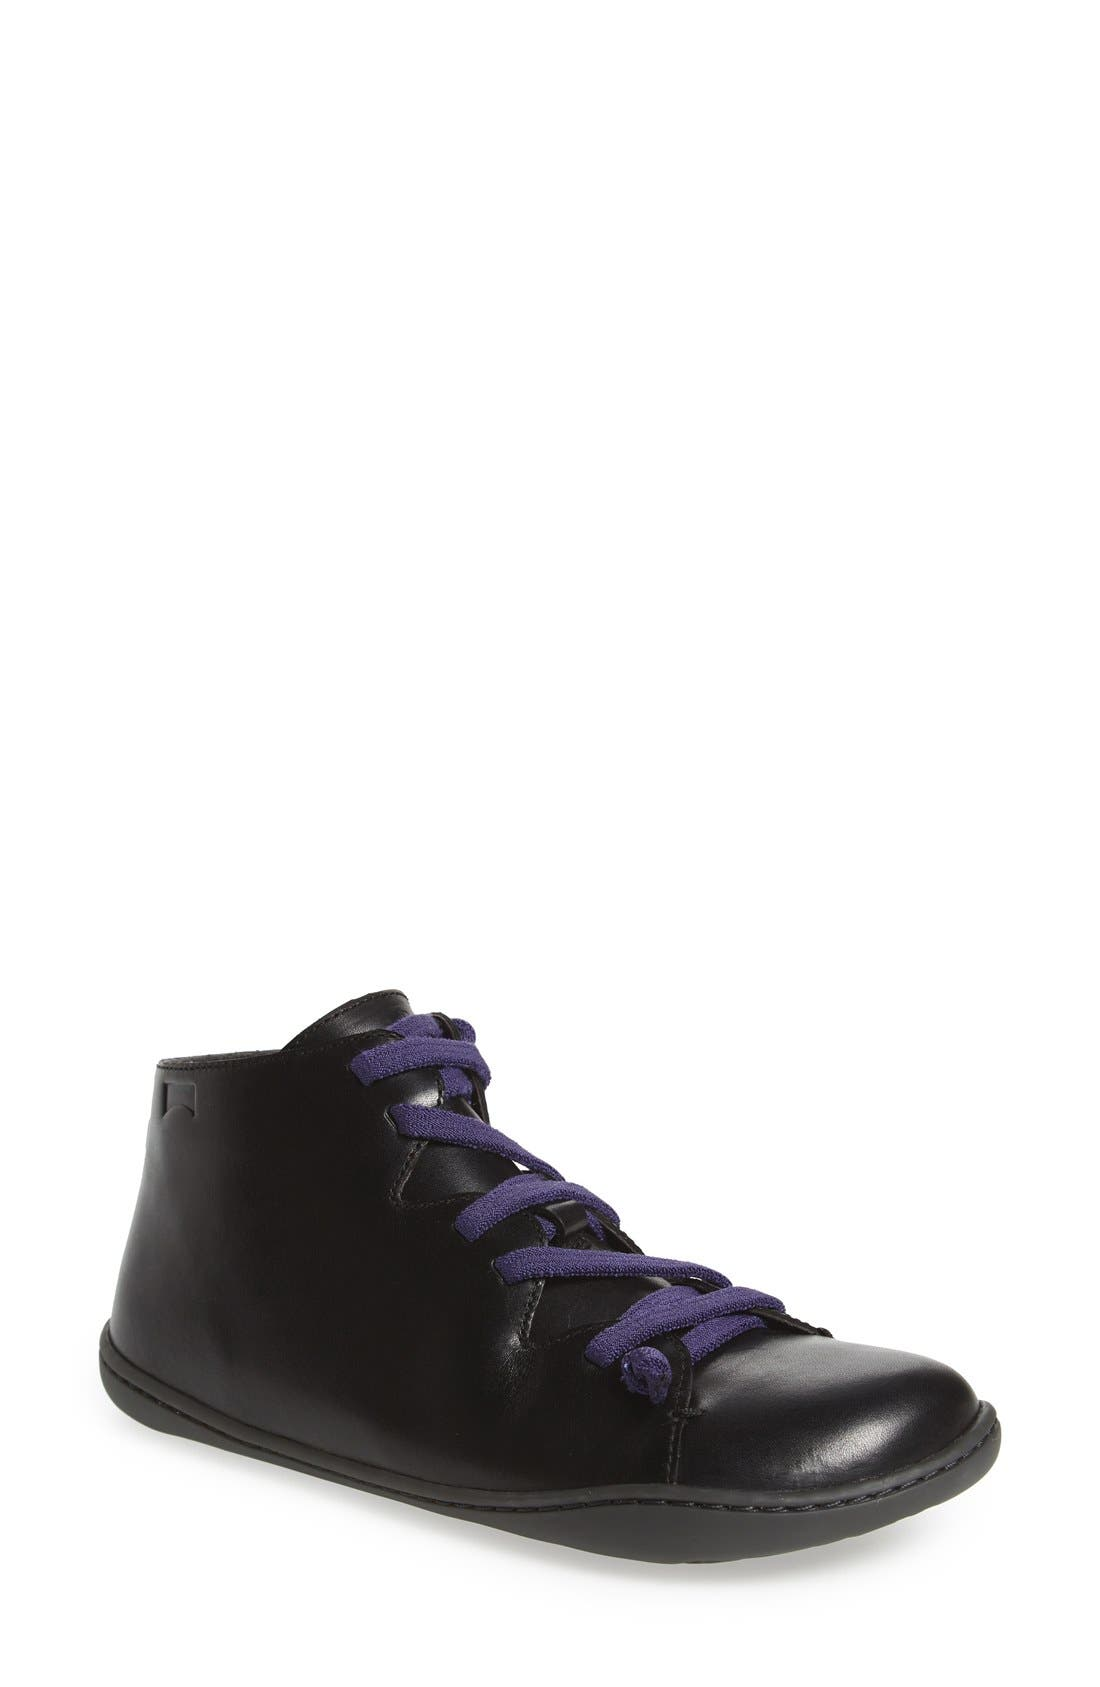 'Peu Cami' Mid Sneaker,                             Main thumbnail 1, color,                             BLACK LEATHER